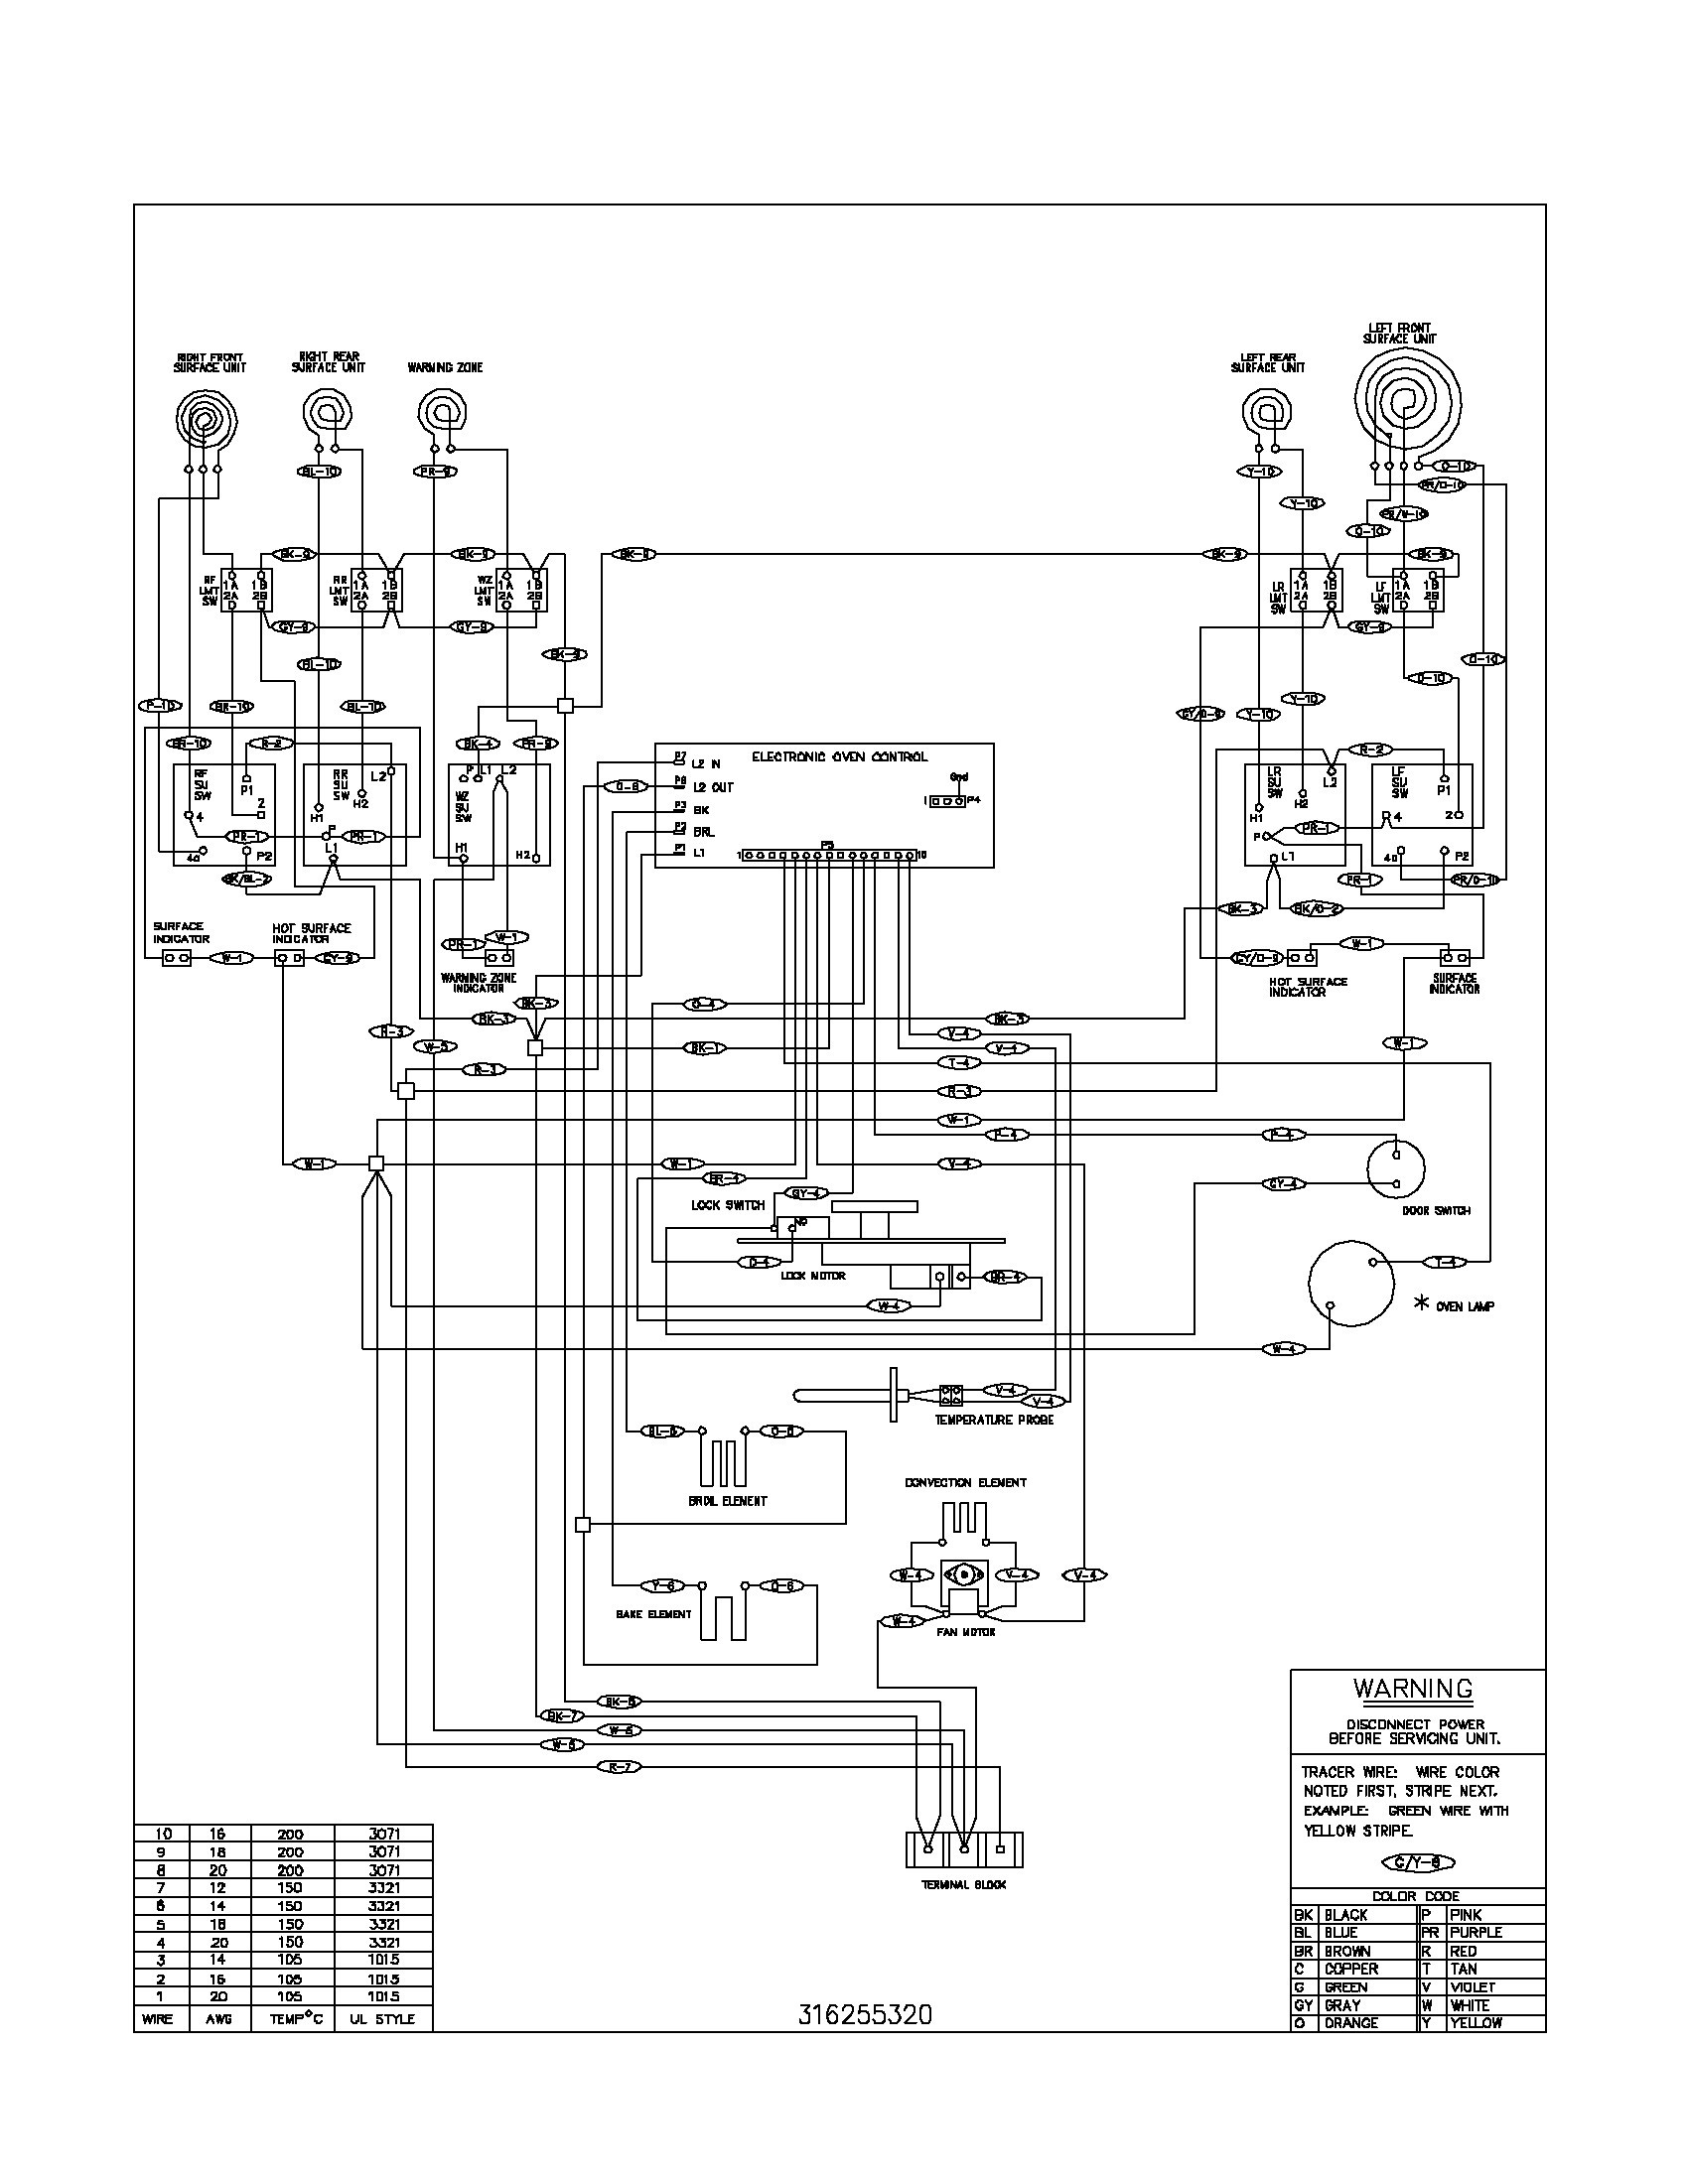 Wolf Microwave Wiring Diagram Explained Diagrams Princess Stove Oven Page 3 And Schematics Air Conditioning